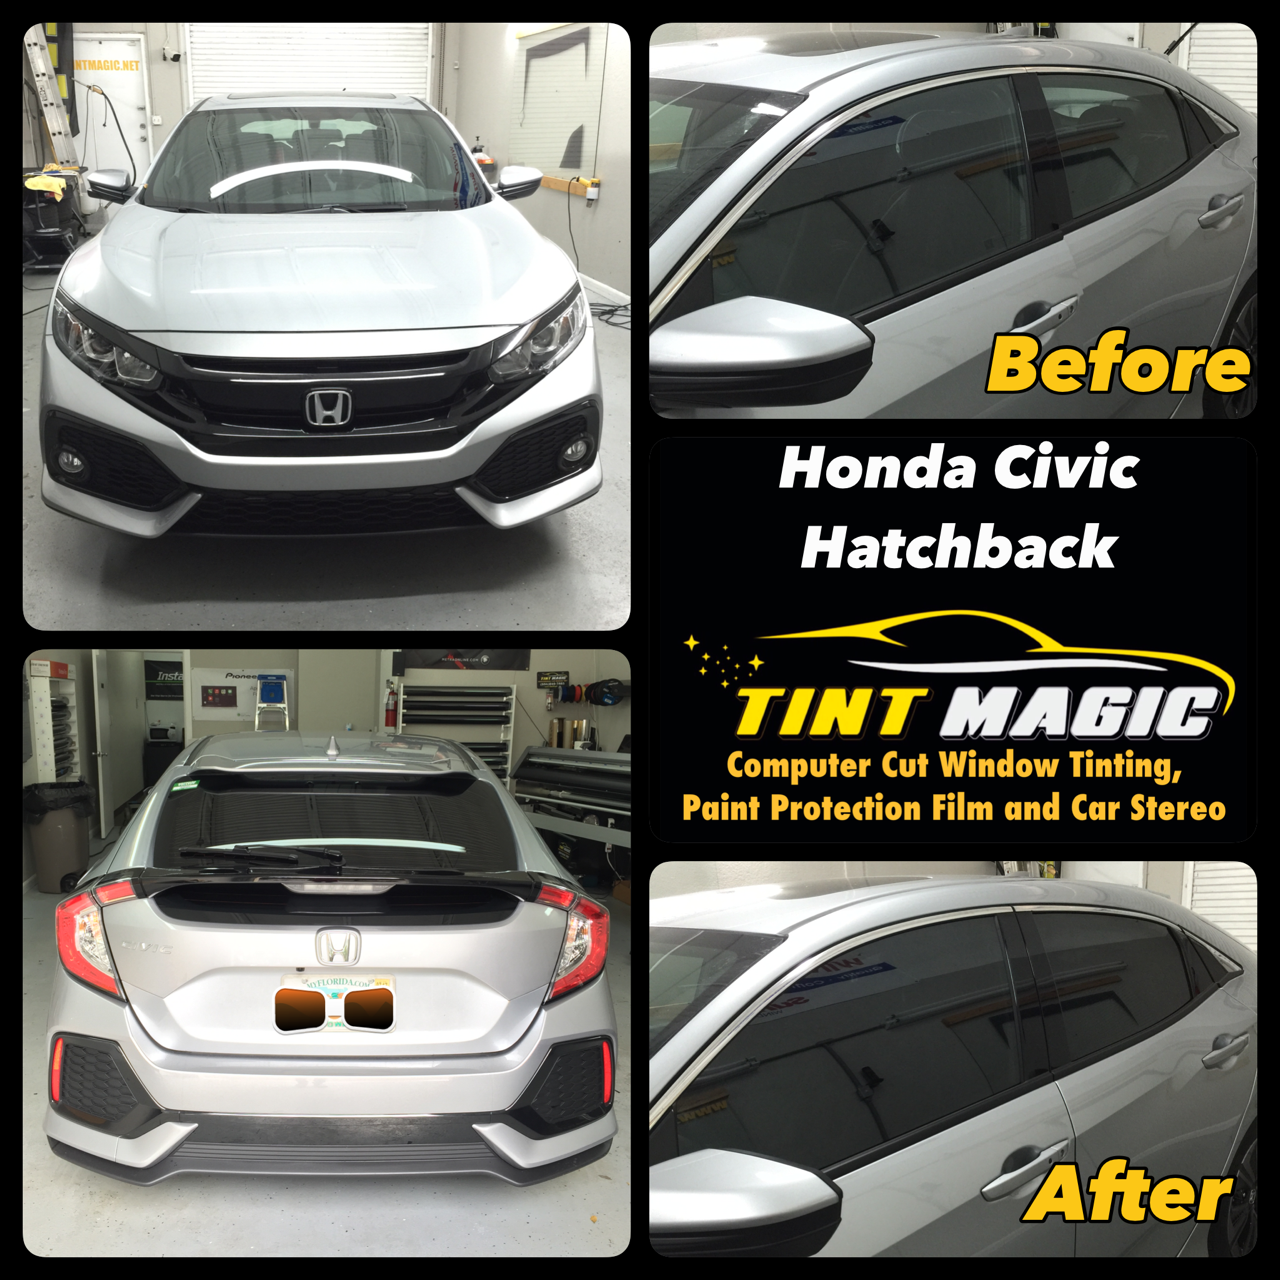 Honda Civic Hatchback at Tint Magic Window Tinti Coral Springs